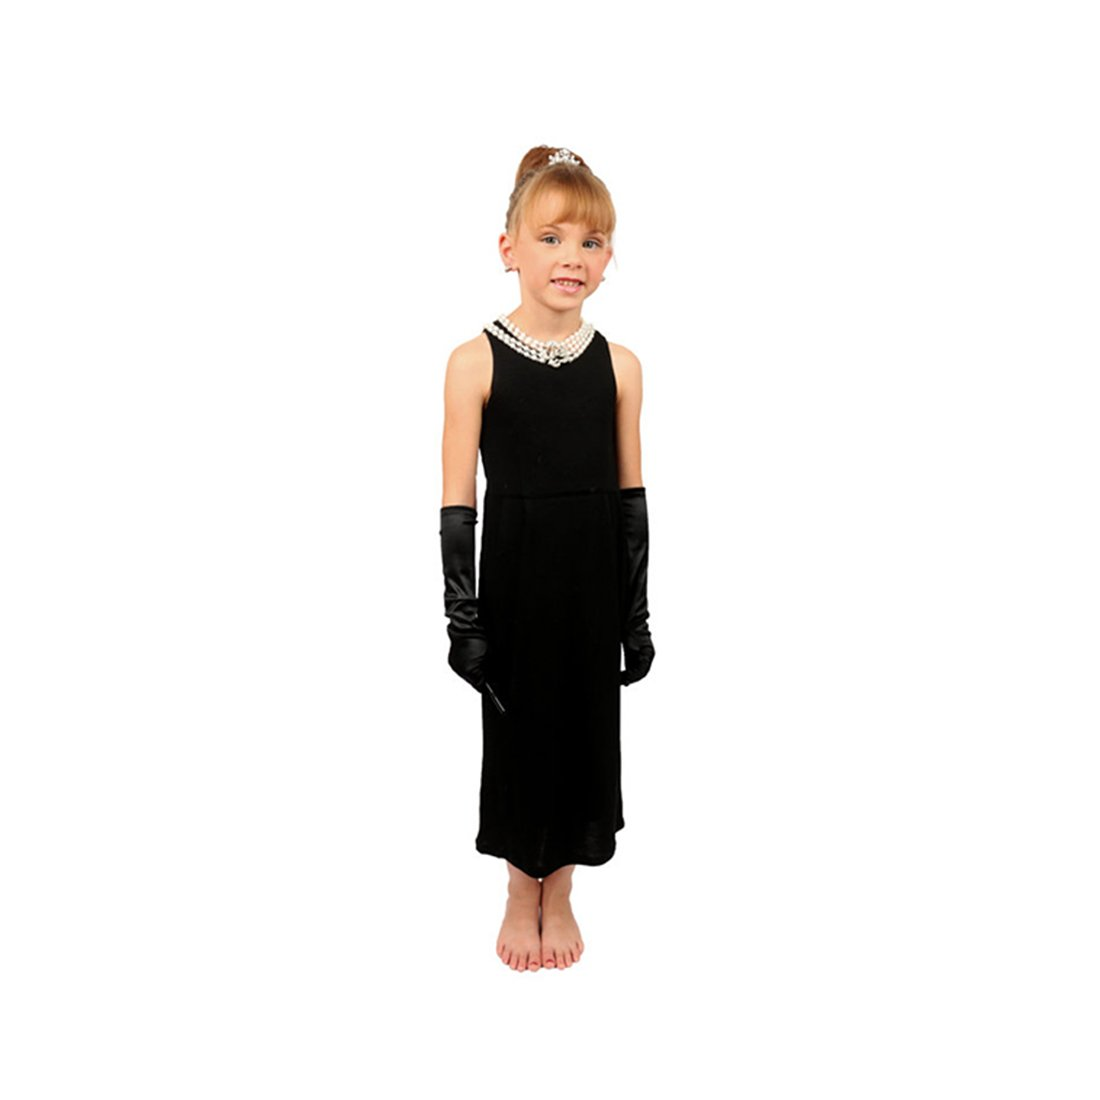 Utopiat Mini Audrey Hepburn-The Girls Size Breakfast at Tiffany's Complete Costume Set Dress and Accessories (M, without gift box)